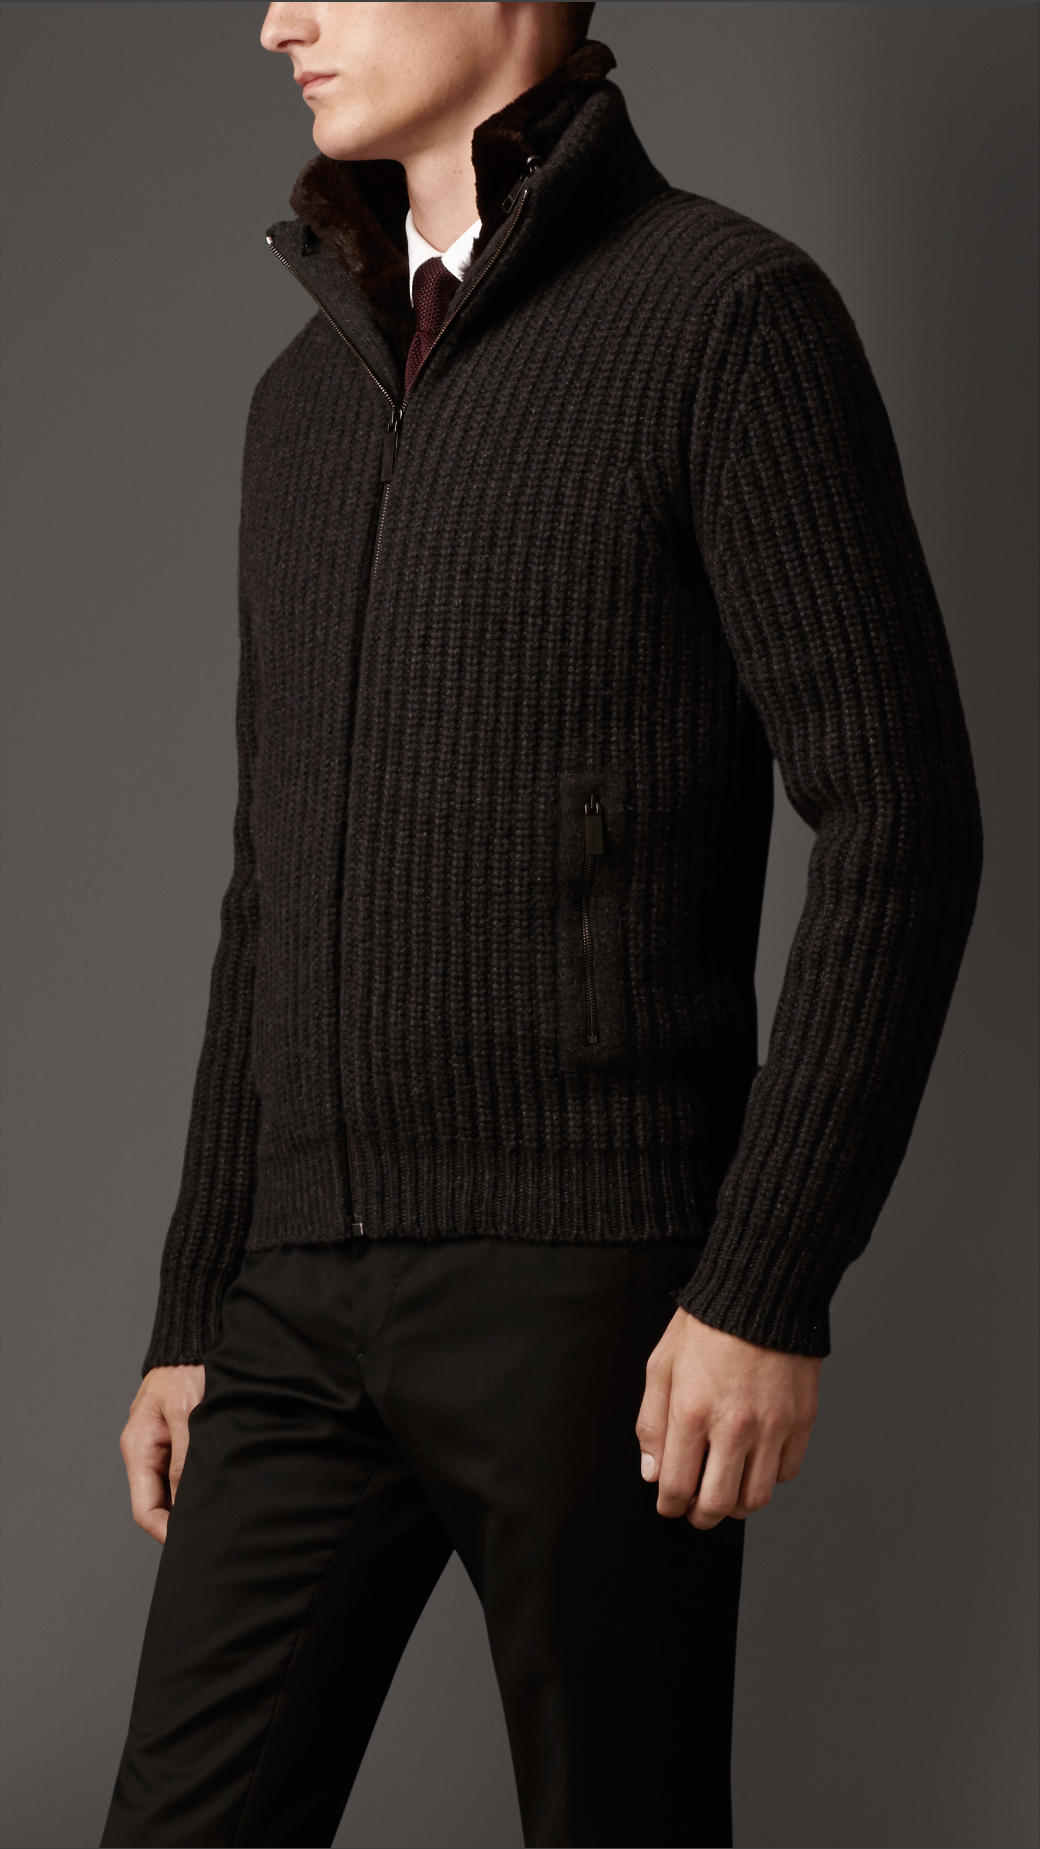 Burberry Ribbed Cashmere Cardigan Jacket with Rabbit Fur Warmer in ...